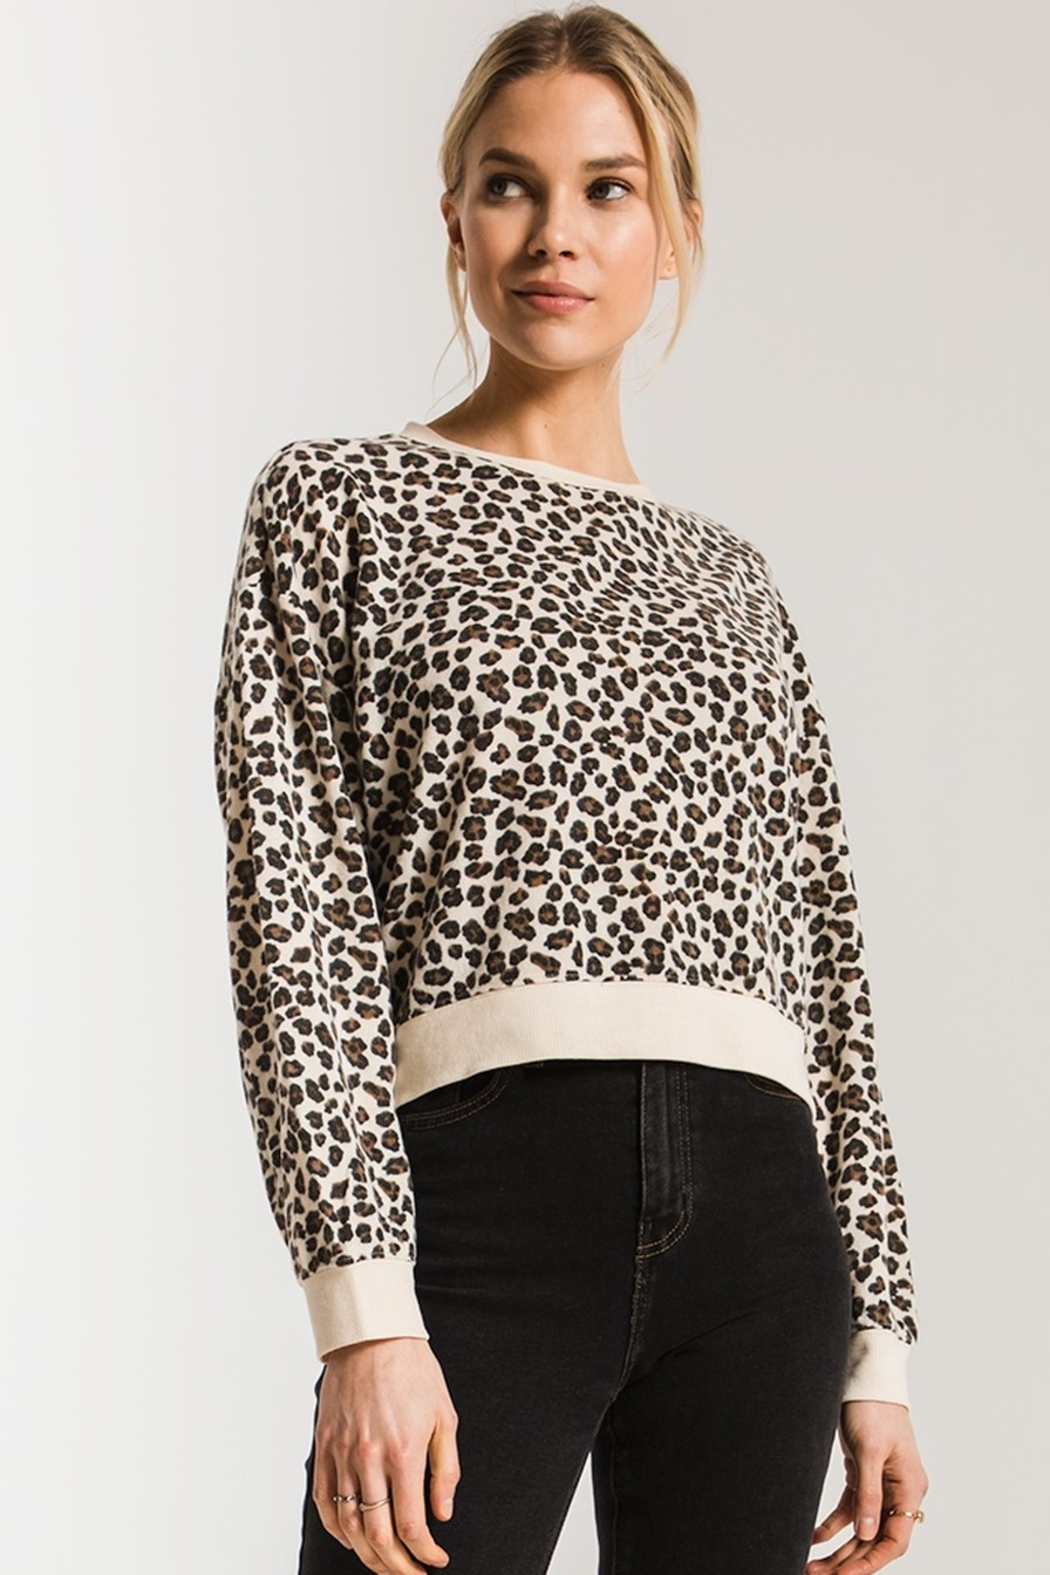 z supply Brushed Leopard Pullover - Front Full Image